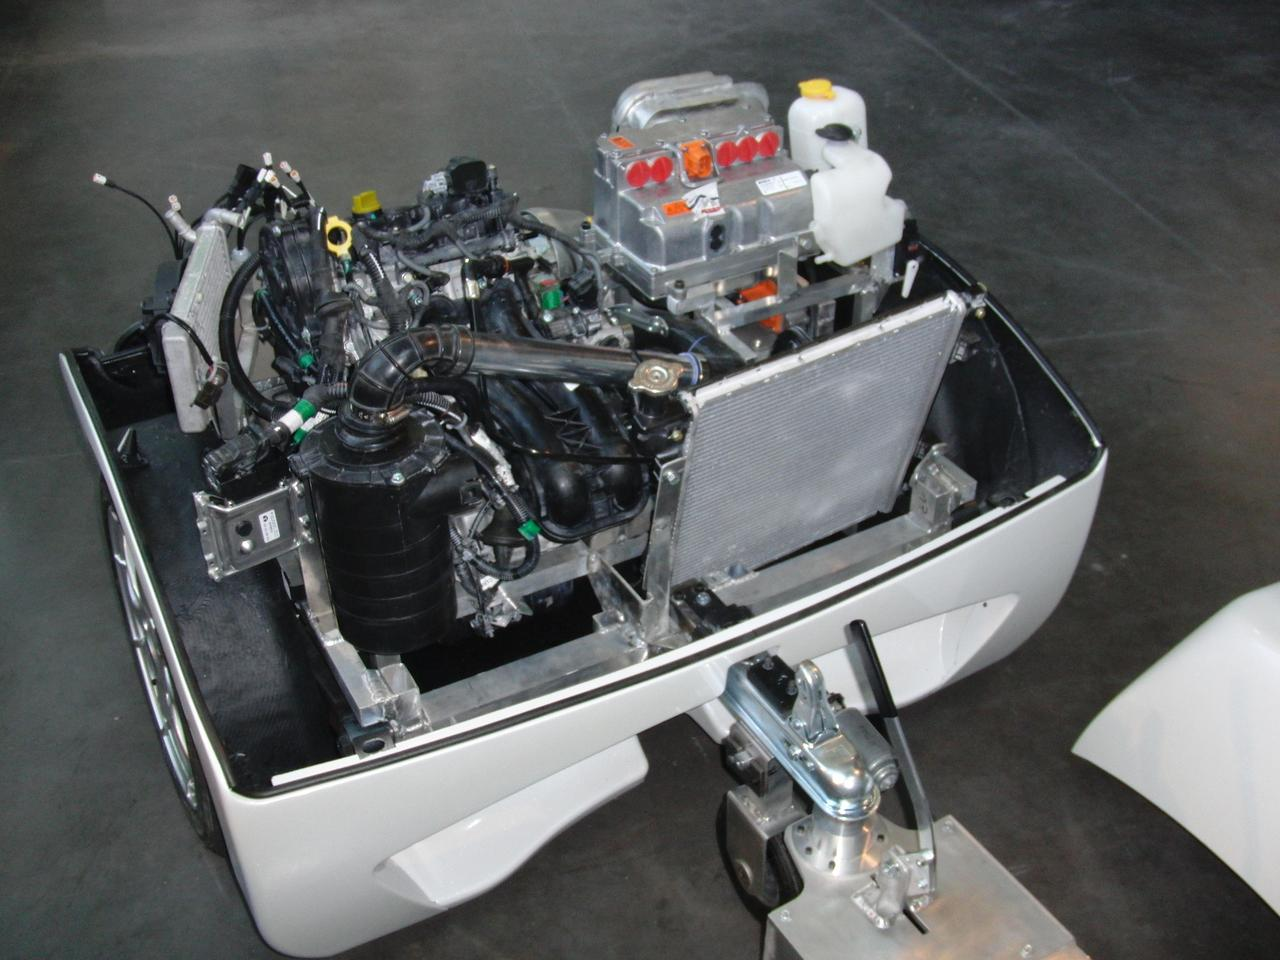 The EP Tender range-extender system is reported to increase vehicle range to 600 km (372 mi)